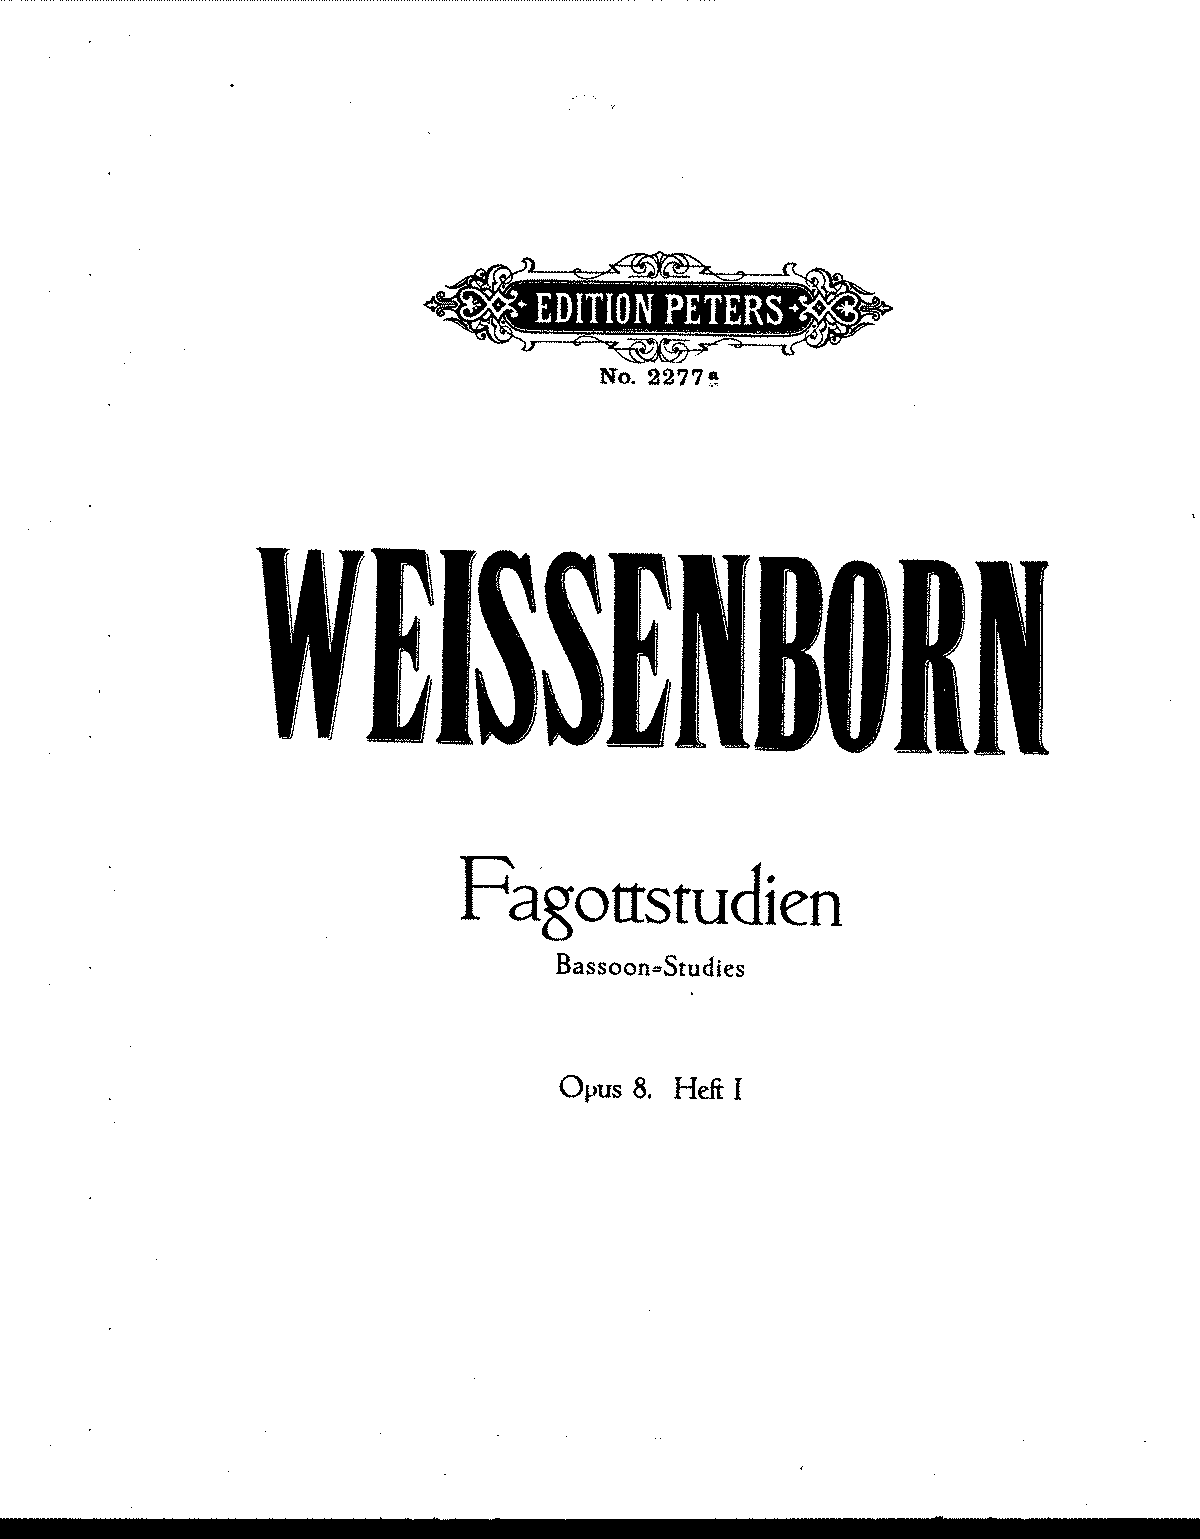 PMLP52982-Weissenborn Bassoon Studies op8 vol1.pdf